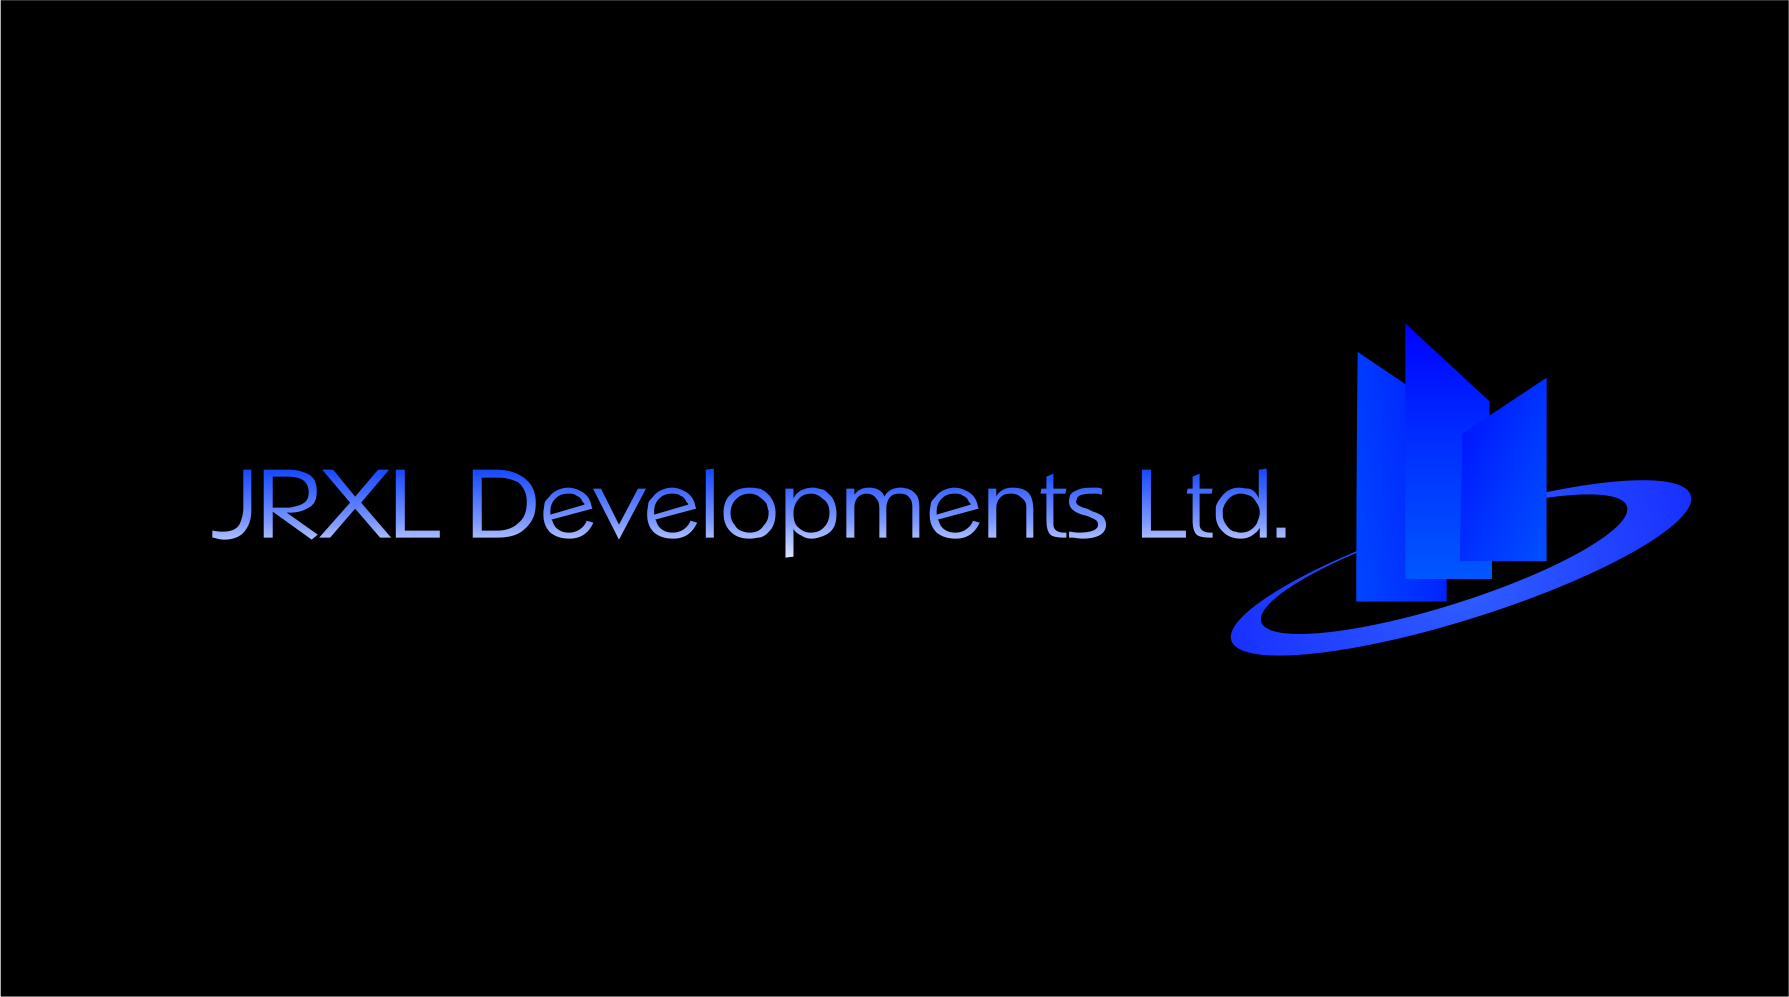 Logo Design by Private User - Entry No. 44 in the Logo Design Contest JRXL DEVELOPMENTS LTD Logo Design.